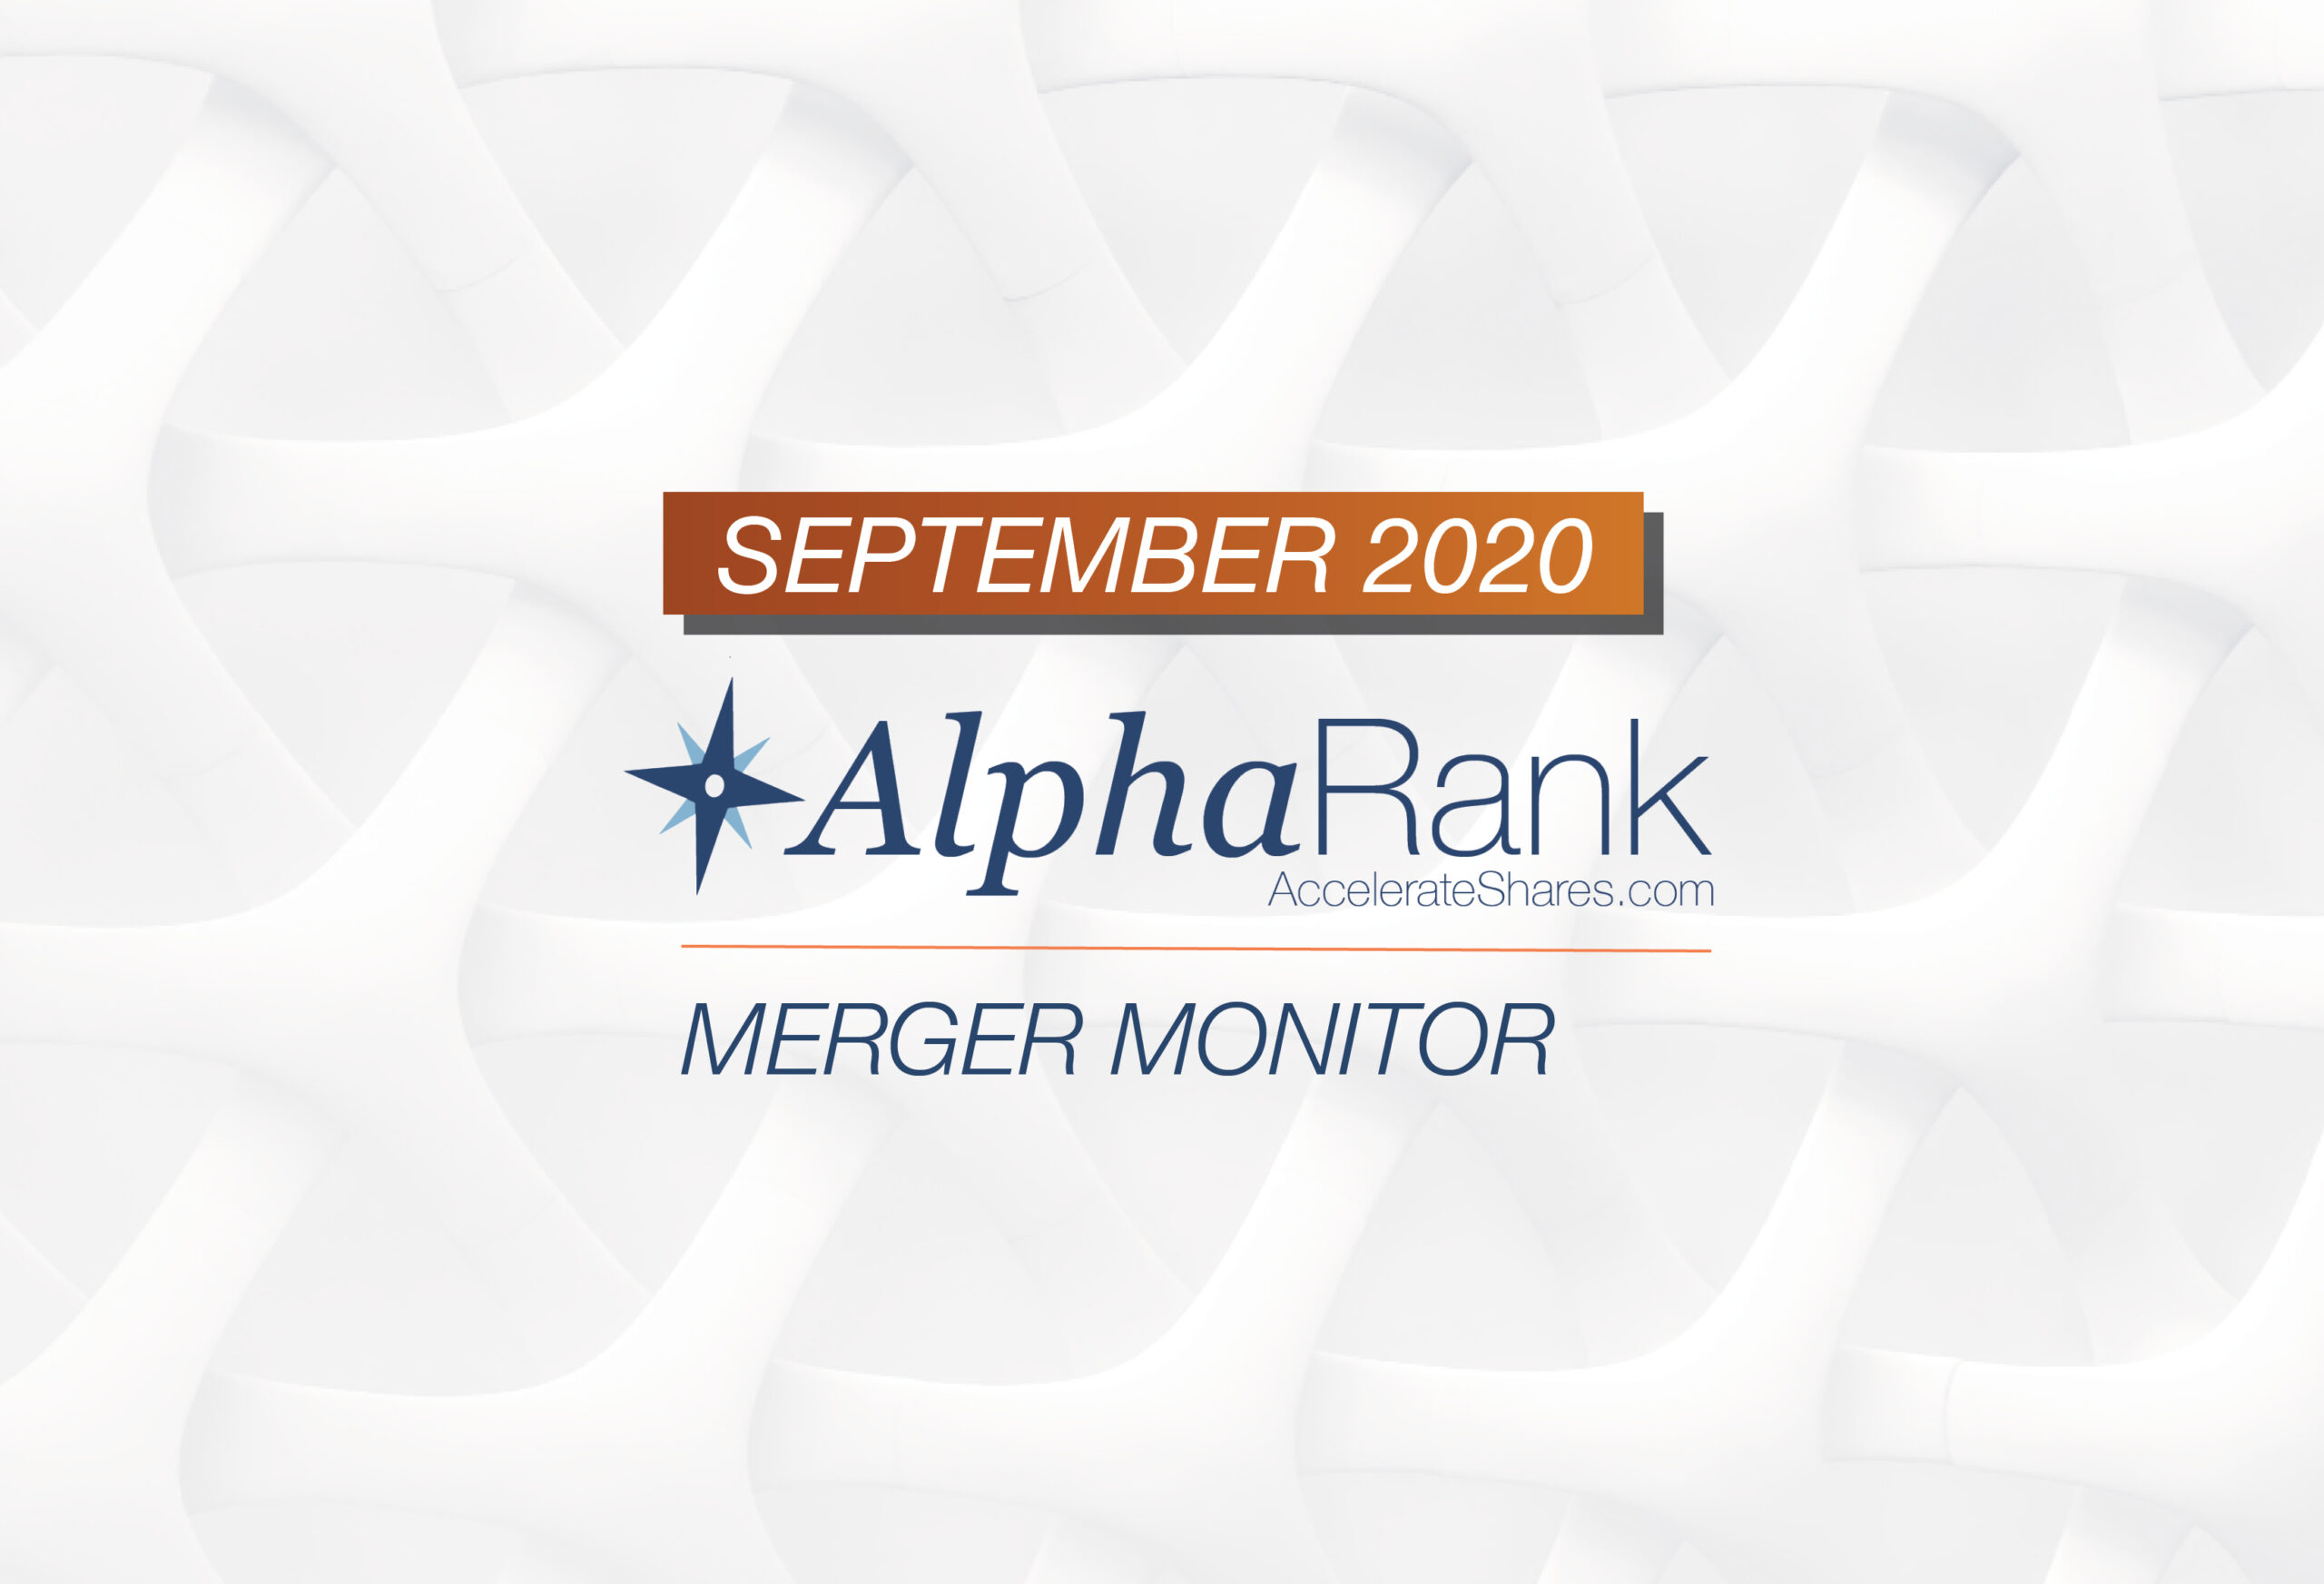 AlphaRank Merger Monitor – September 2020